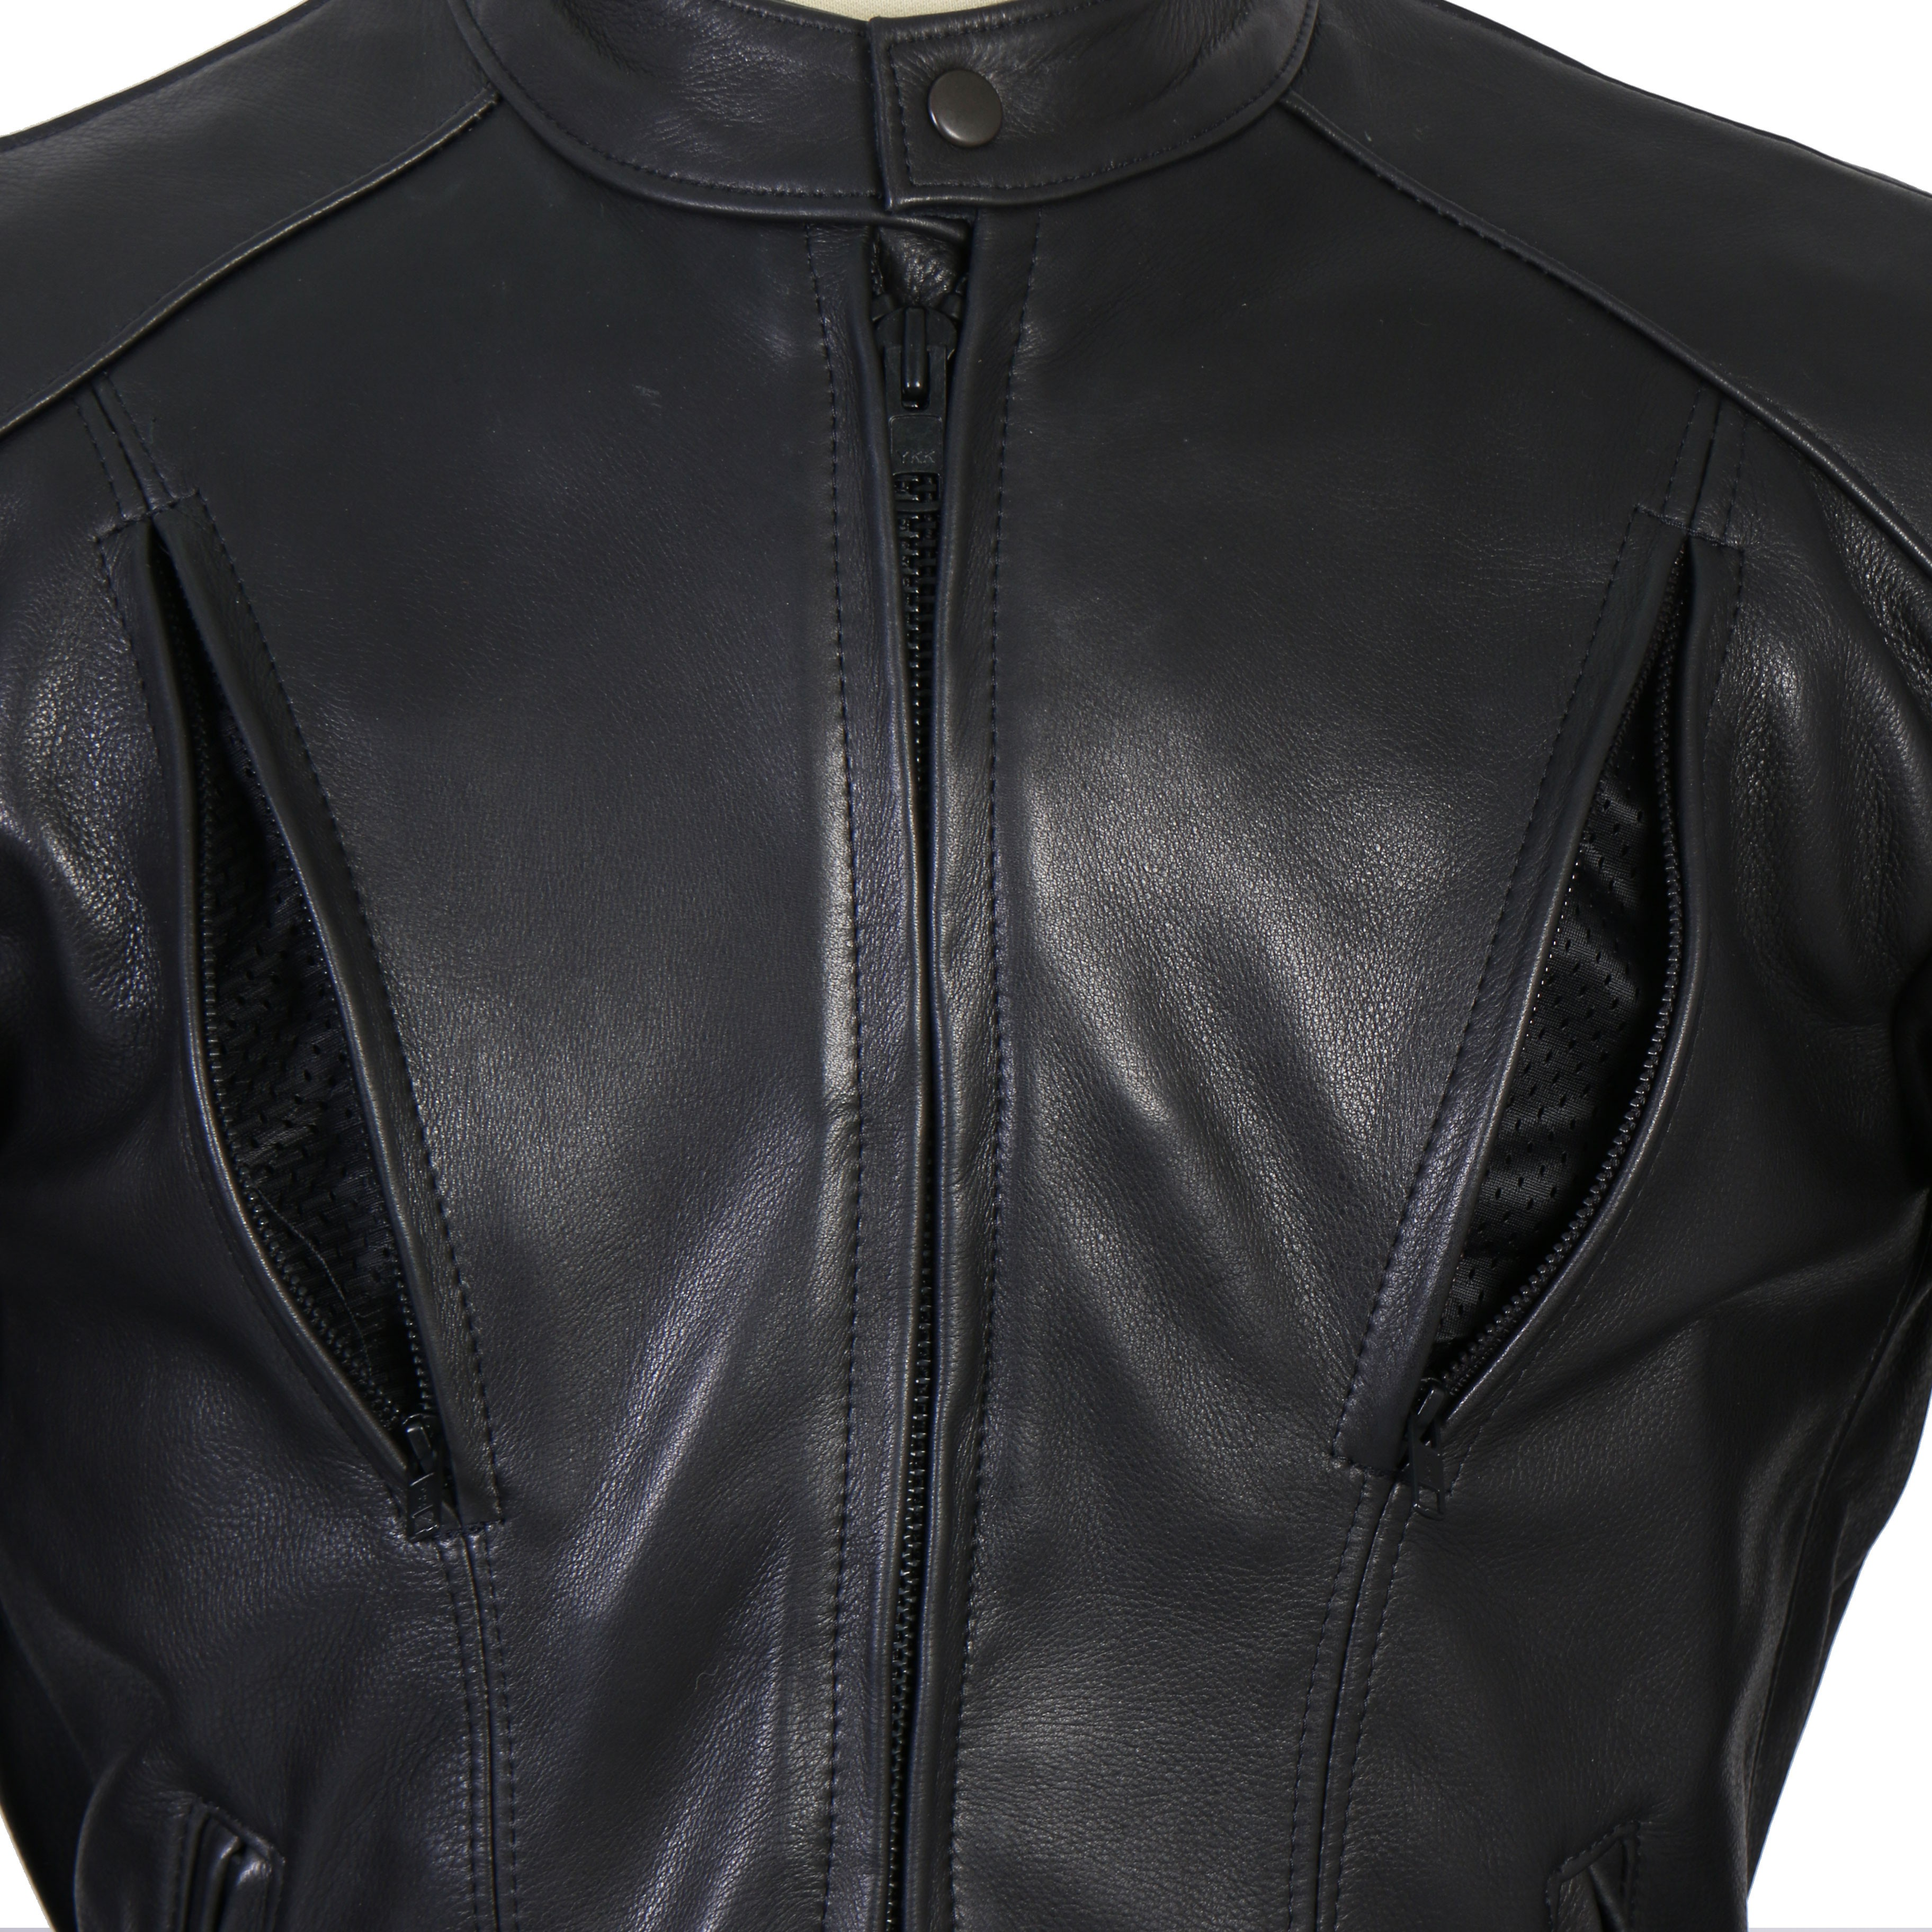 63f9b2e46b53 Men s Vented Leather Biker Jacket with Side Lace